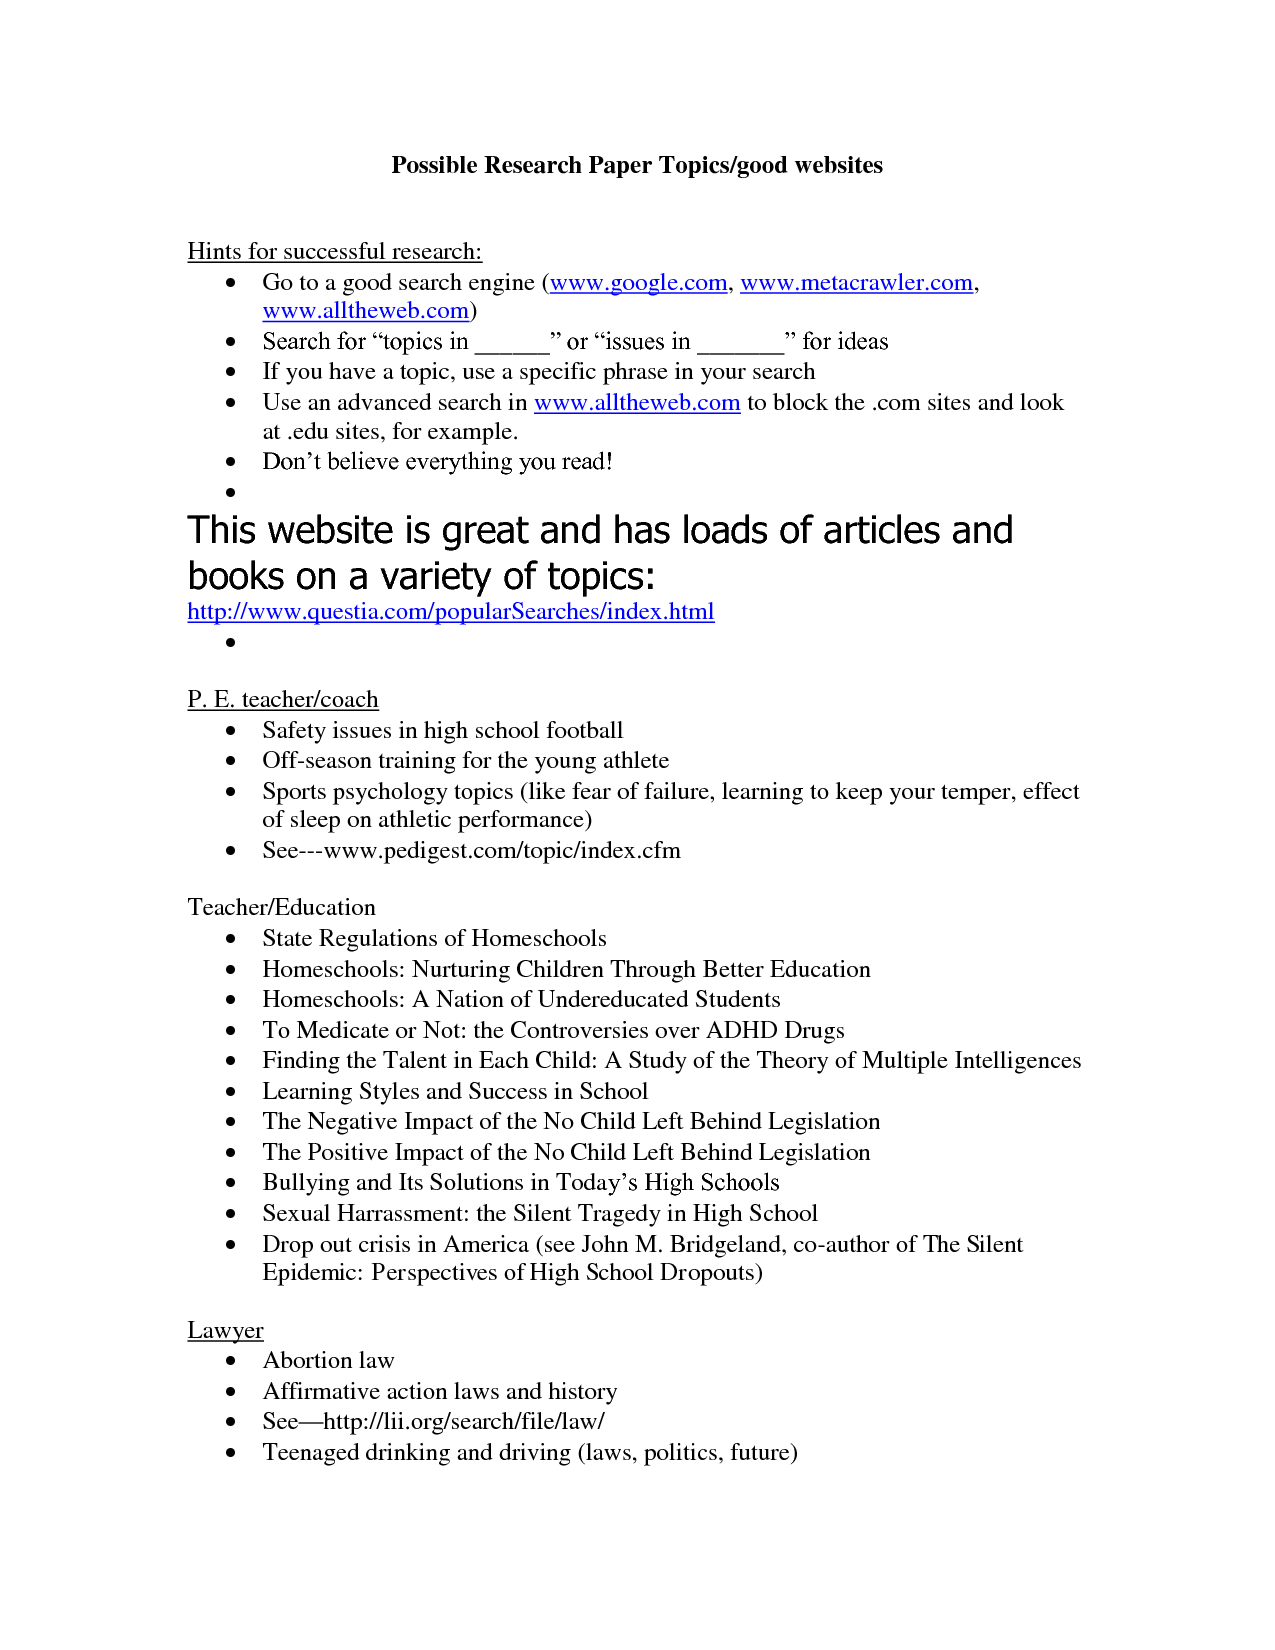 003 Research Paper Topics For Middlechool Bestolutions Of Interesting Fabulous Papers Hightudents Fearsome Middle School High Students Persuasive Full